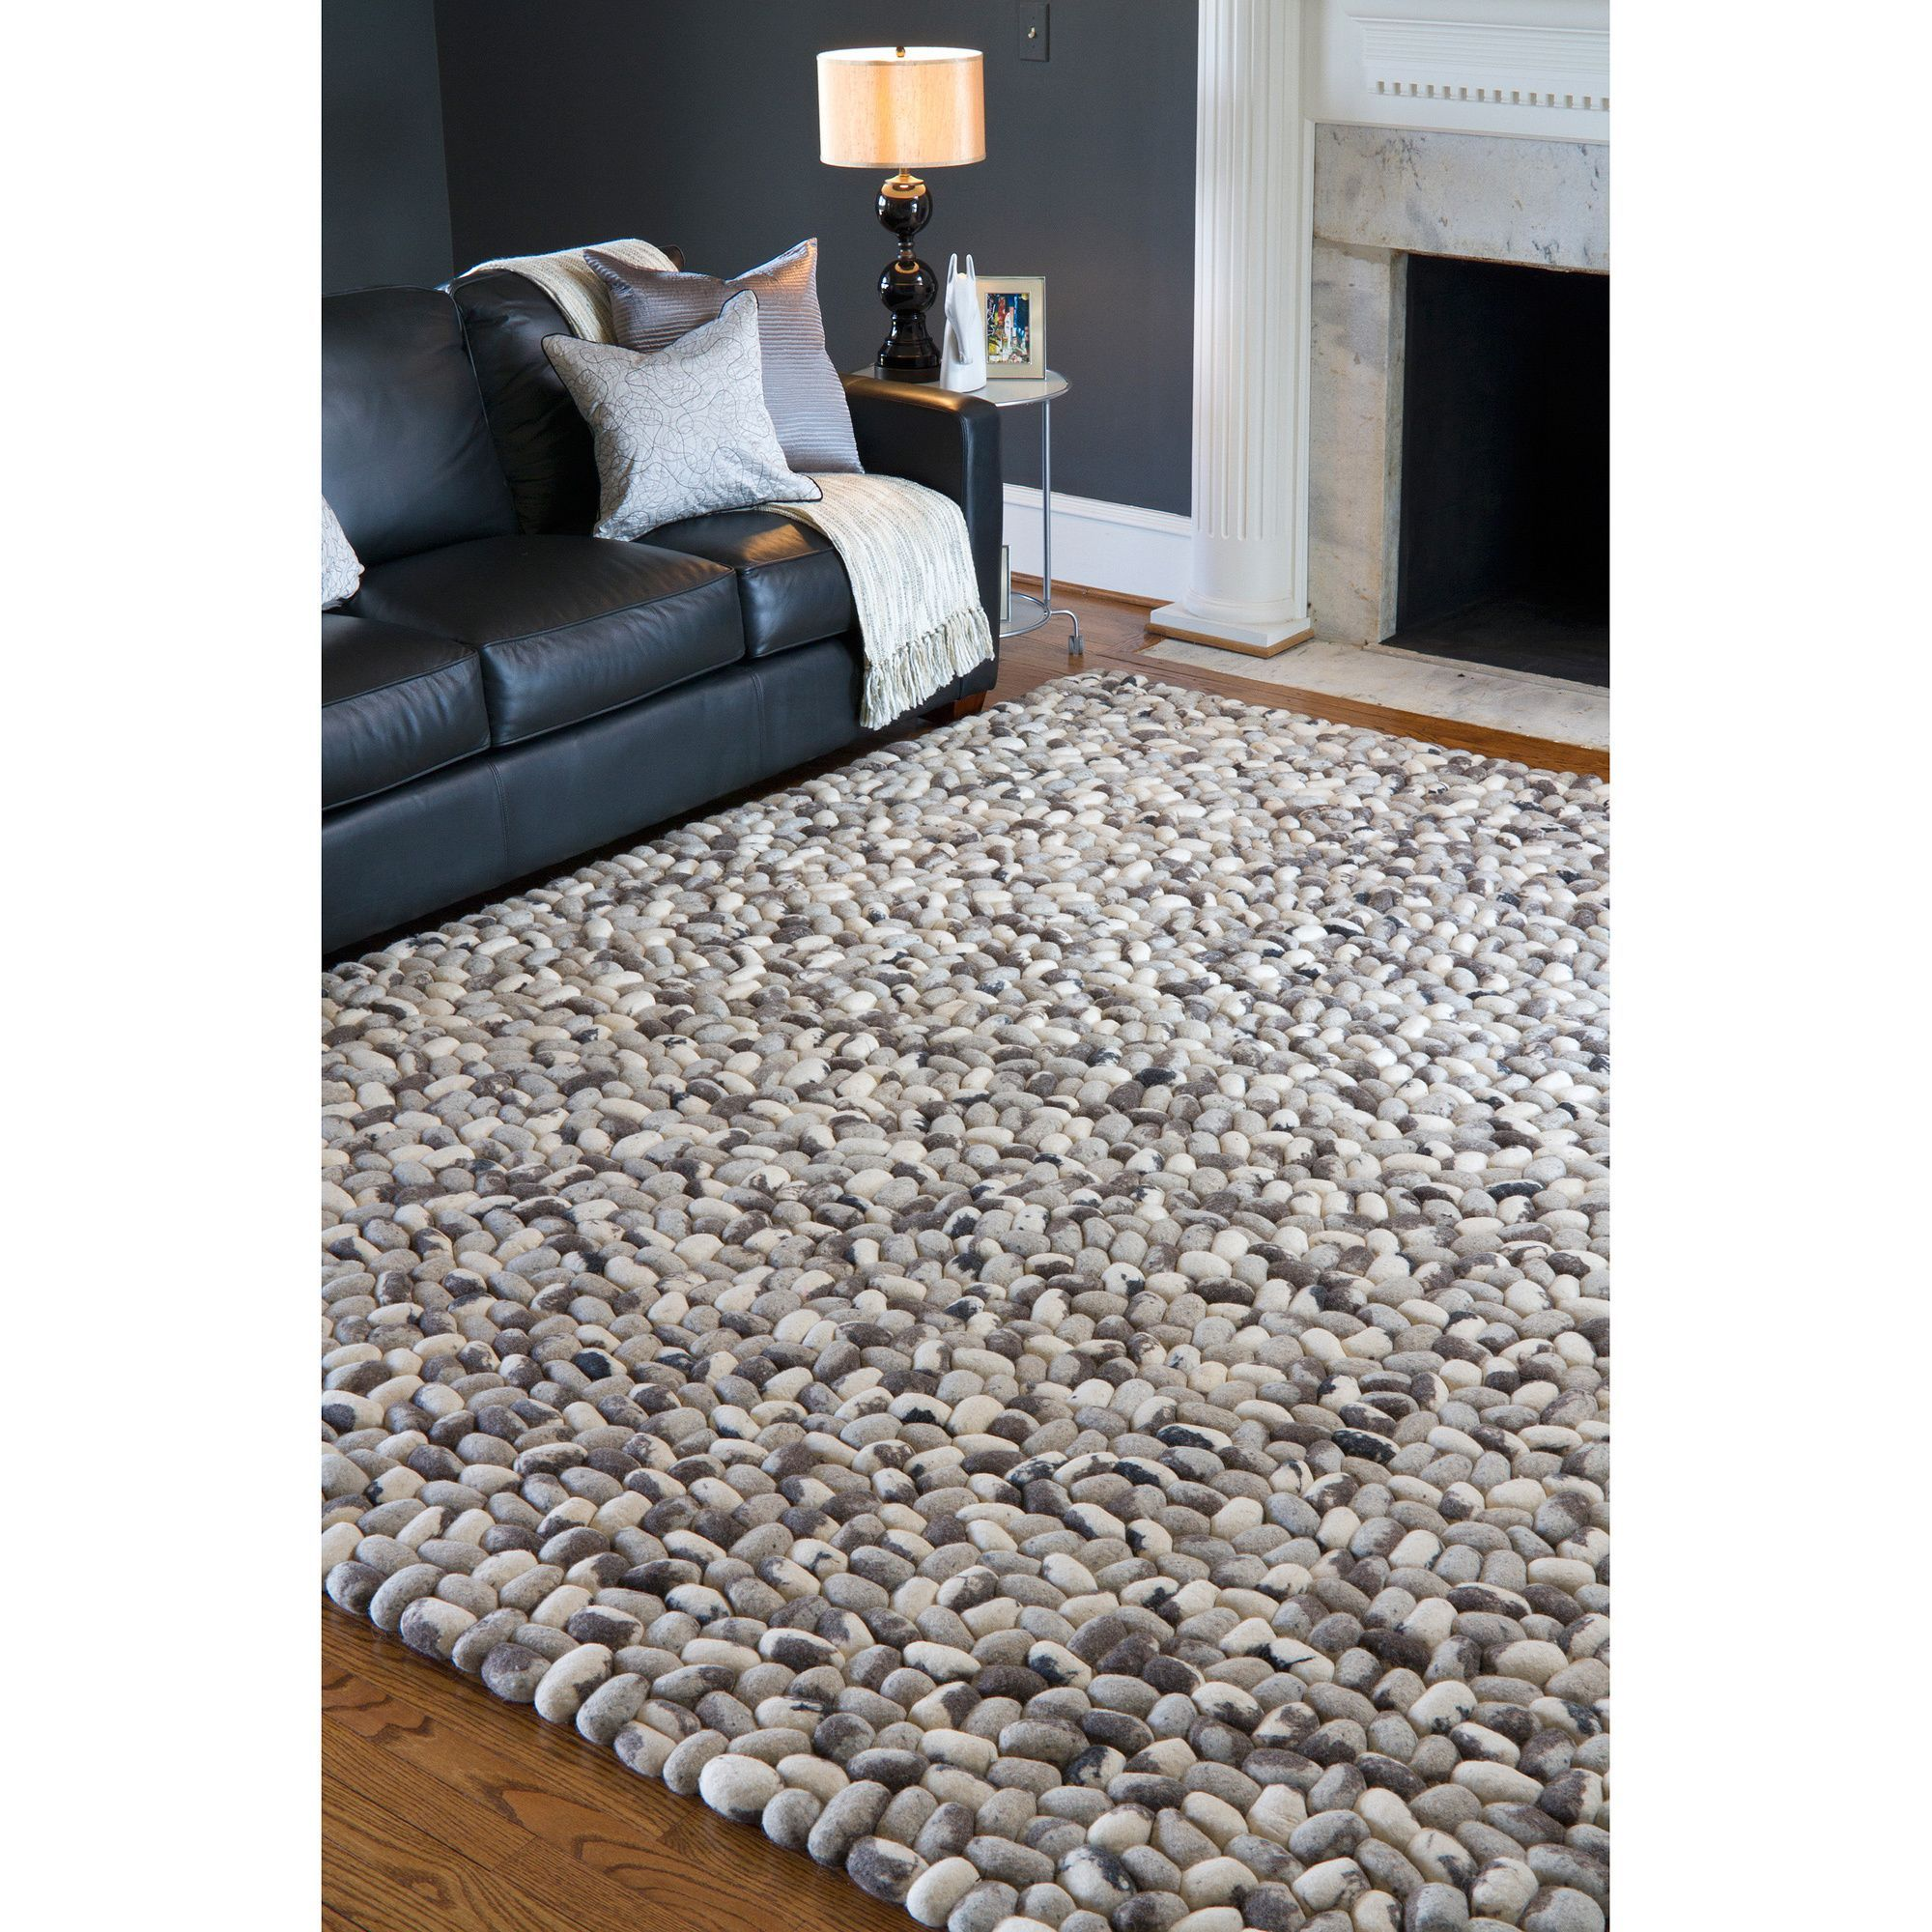 Online Shopping Bedding Furniture Electronics Jewelry Clothing More Rug Texture Living Room Decor Neutral Rugs